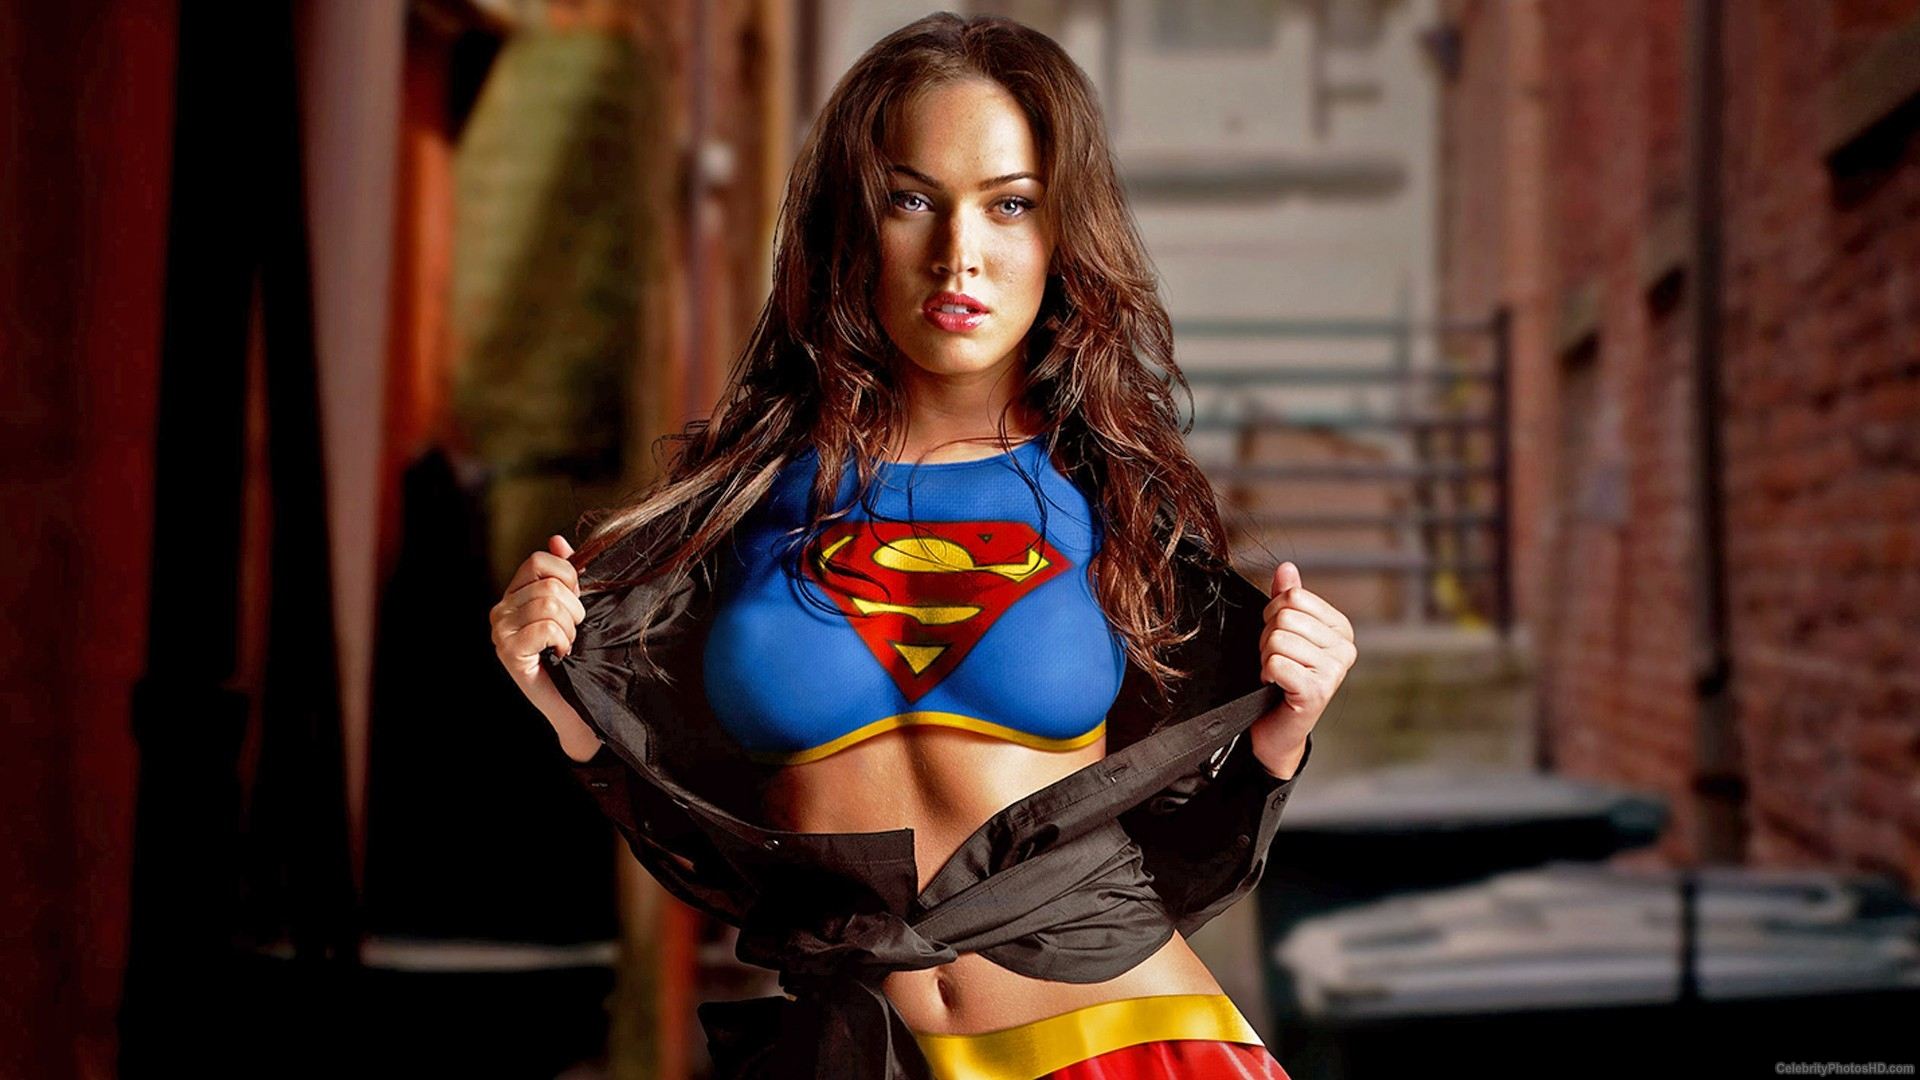 megan-fox-unseen-hot-photos-7